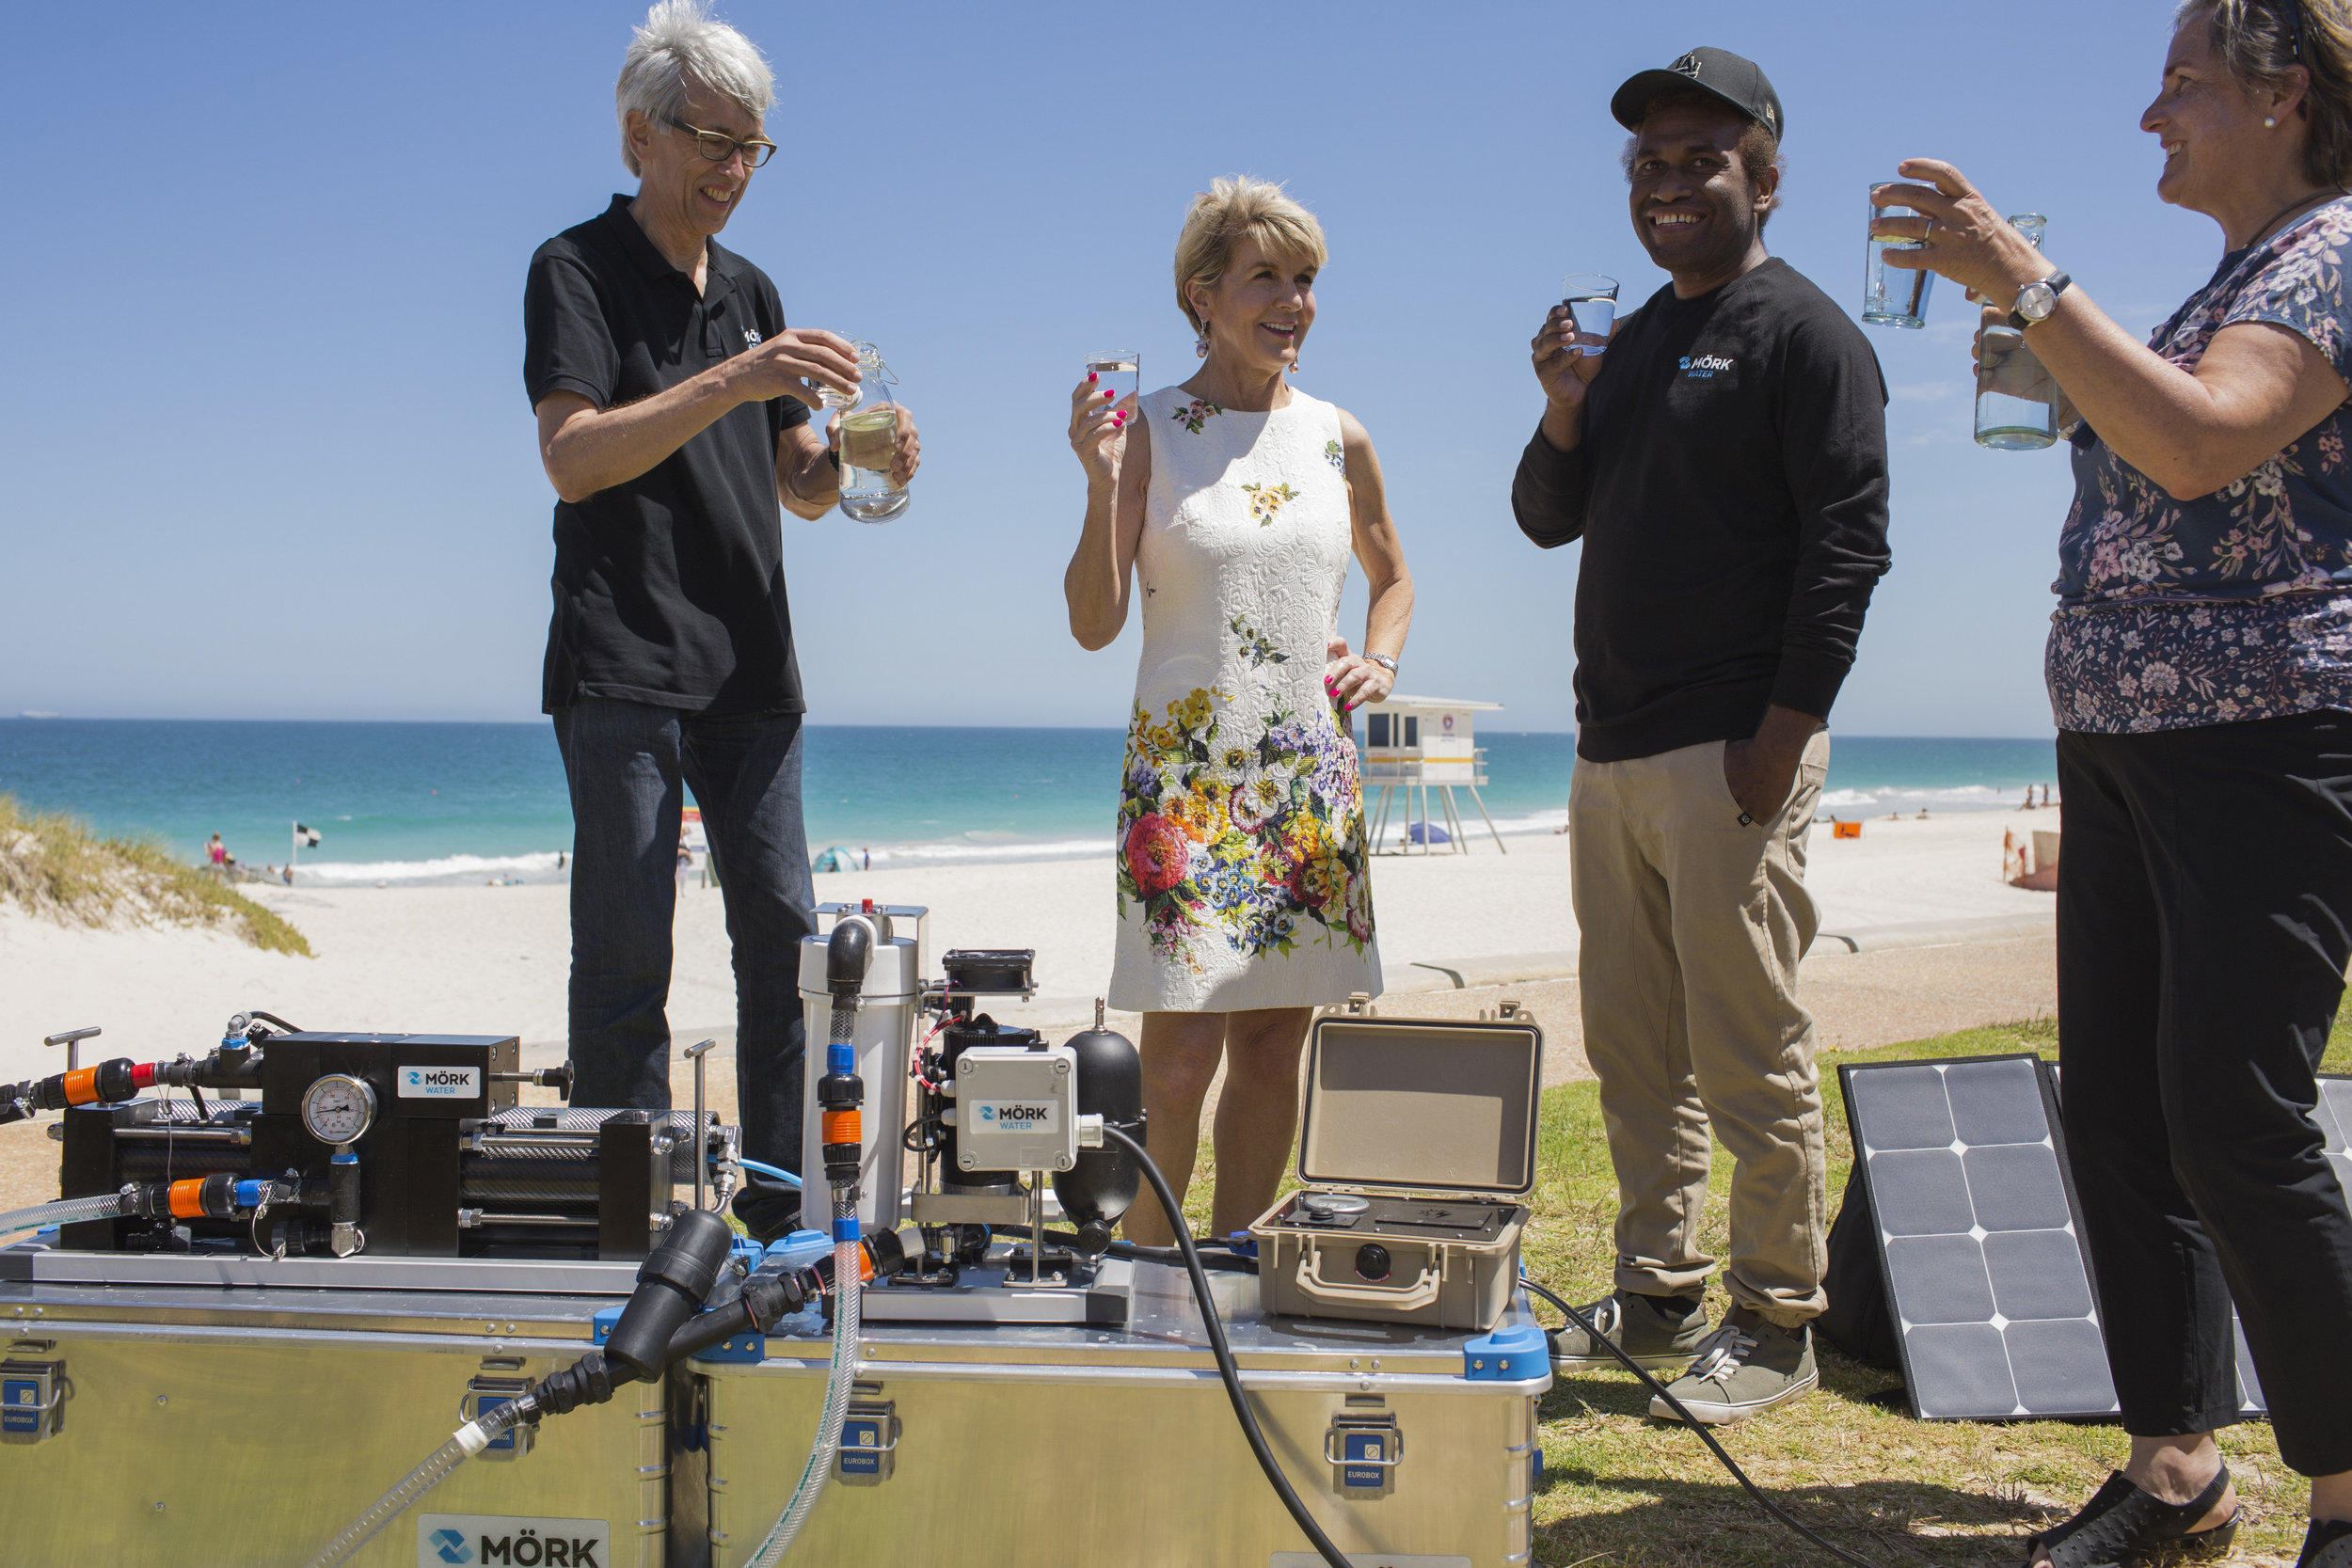 Martin Brezger, the Hon Julie Bishop MP, Robert Iromelafo and Barbara Brezger sample fresh water from the ocean